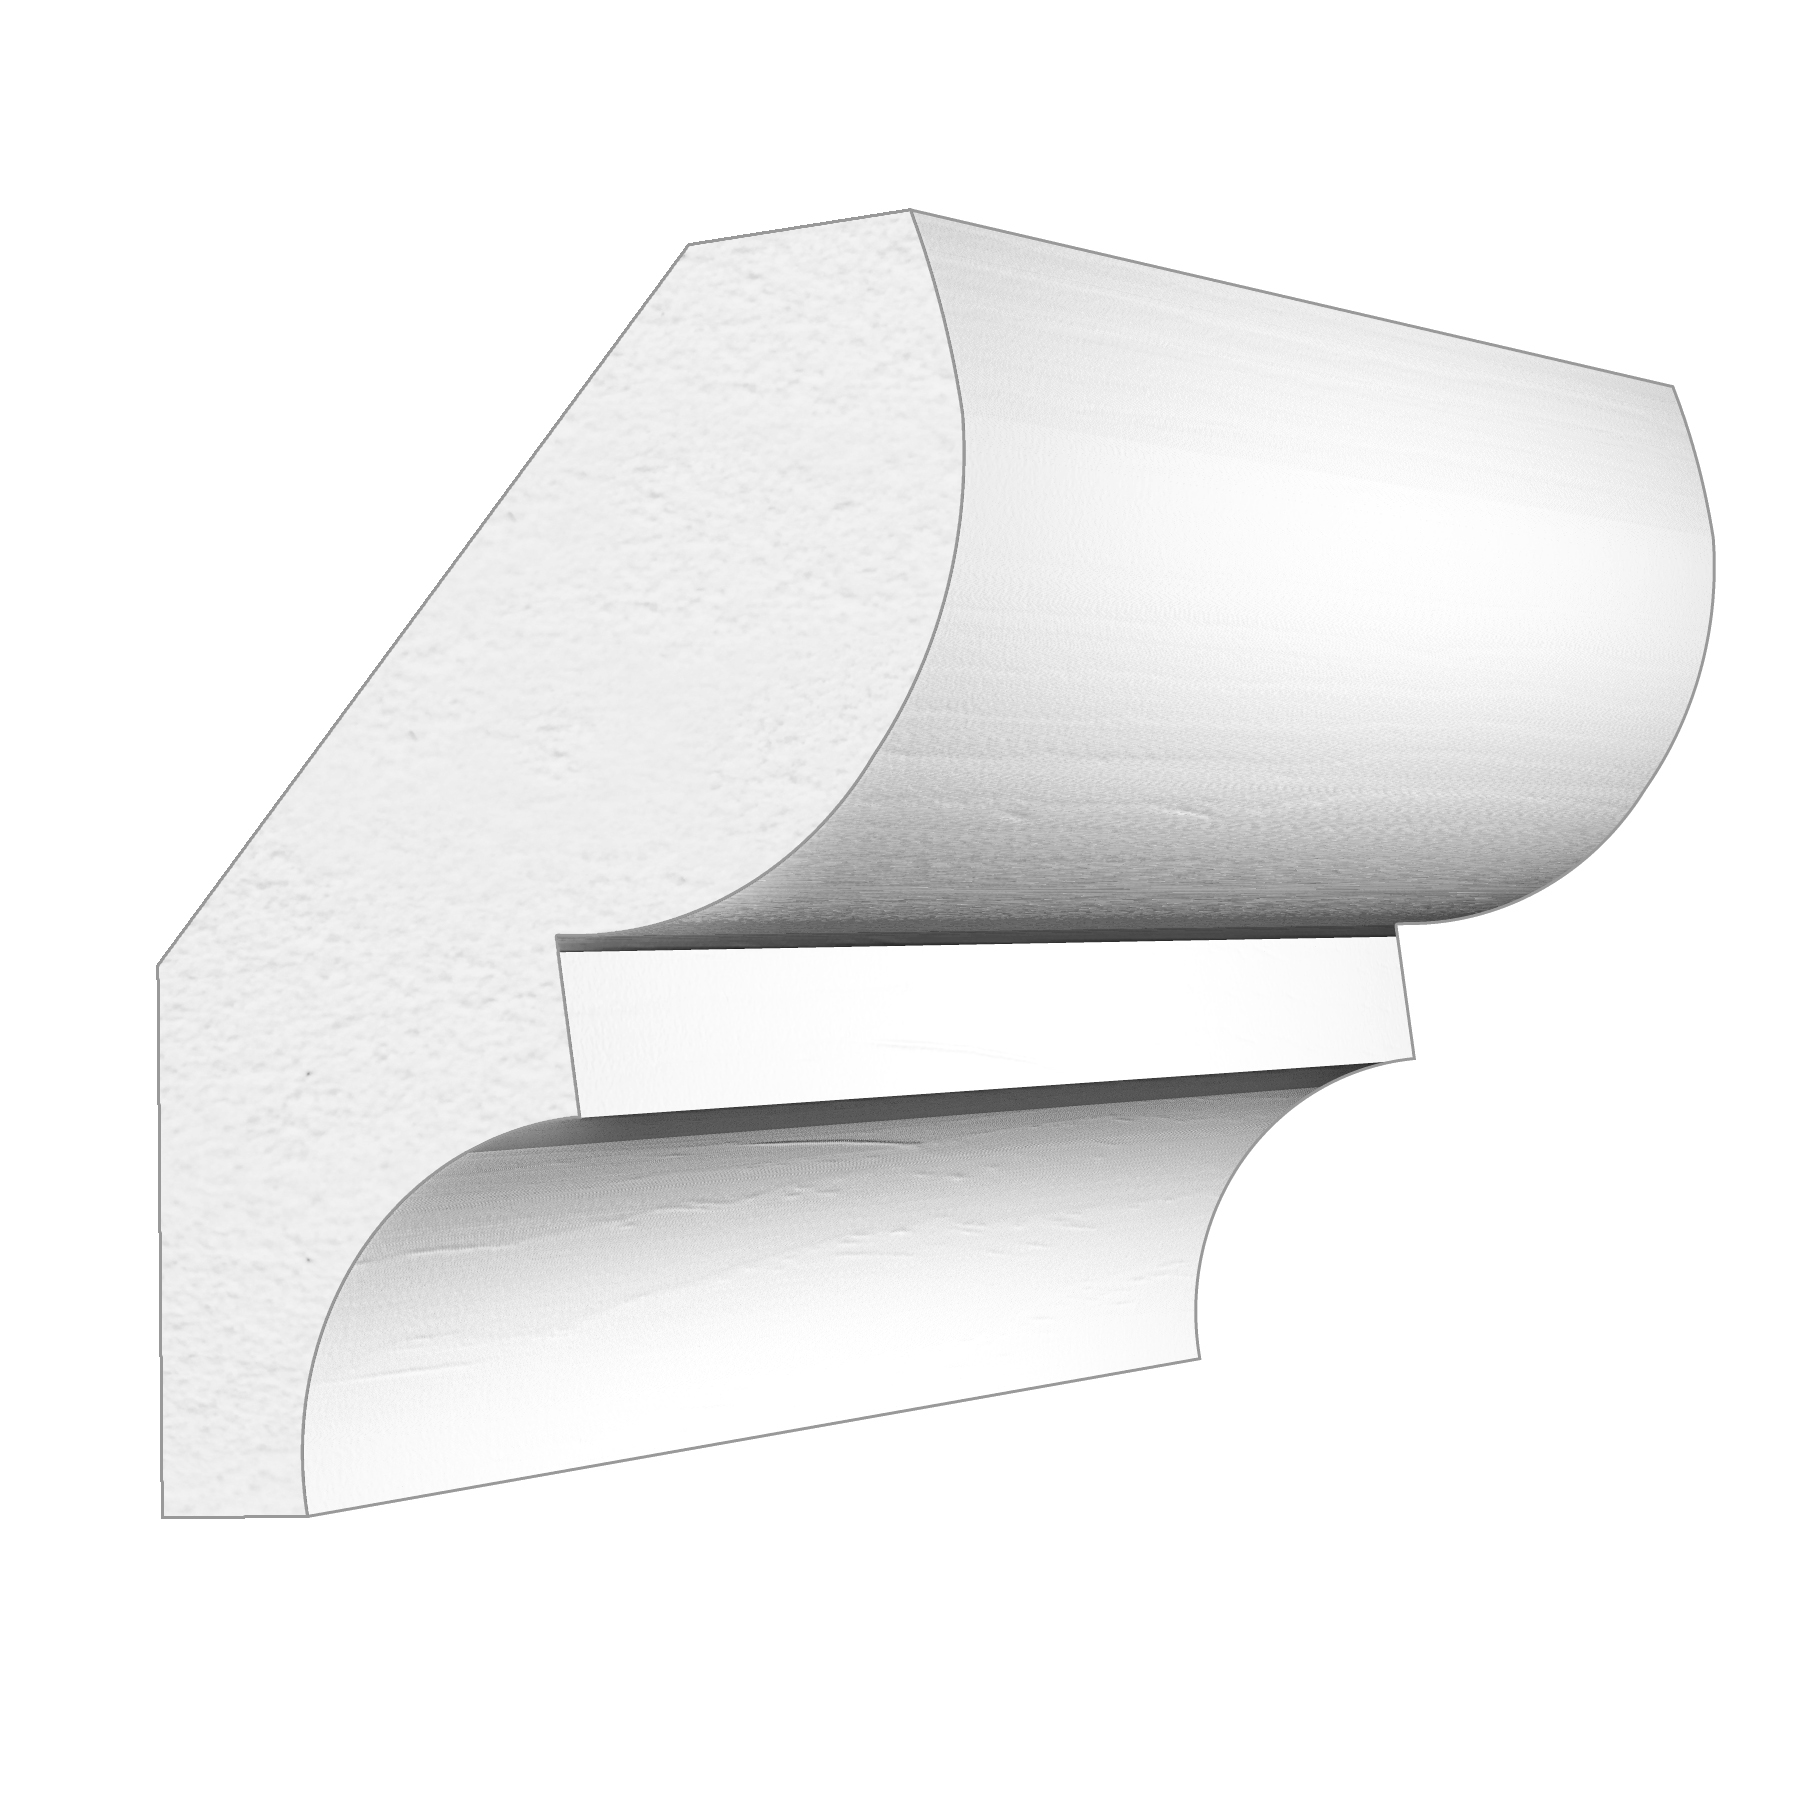 PALIGHT WHITE PVC BED MOULDING